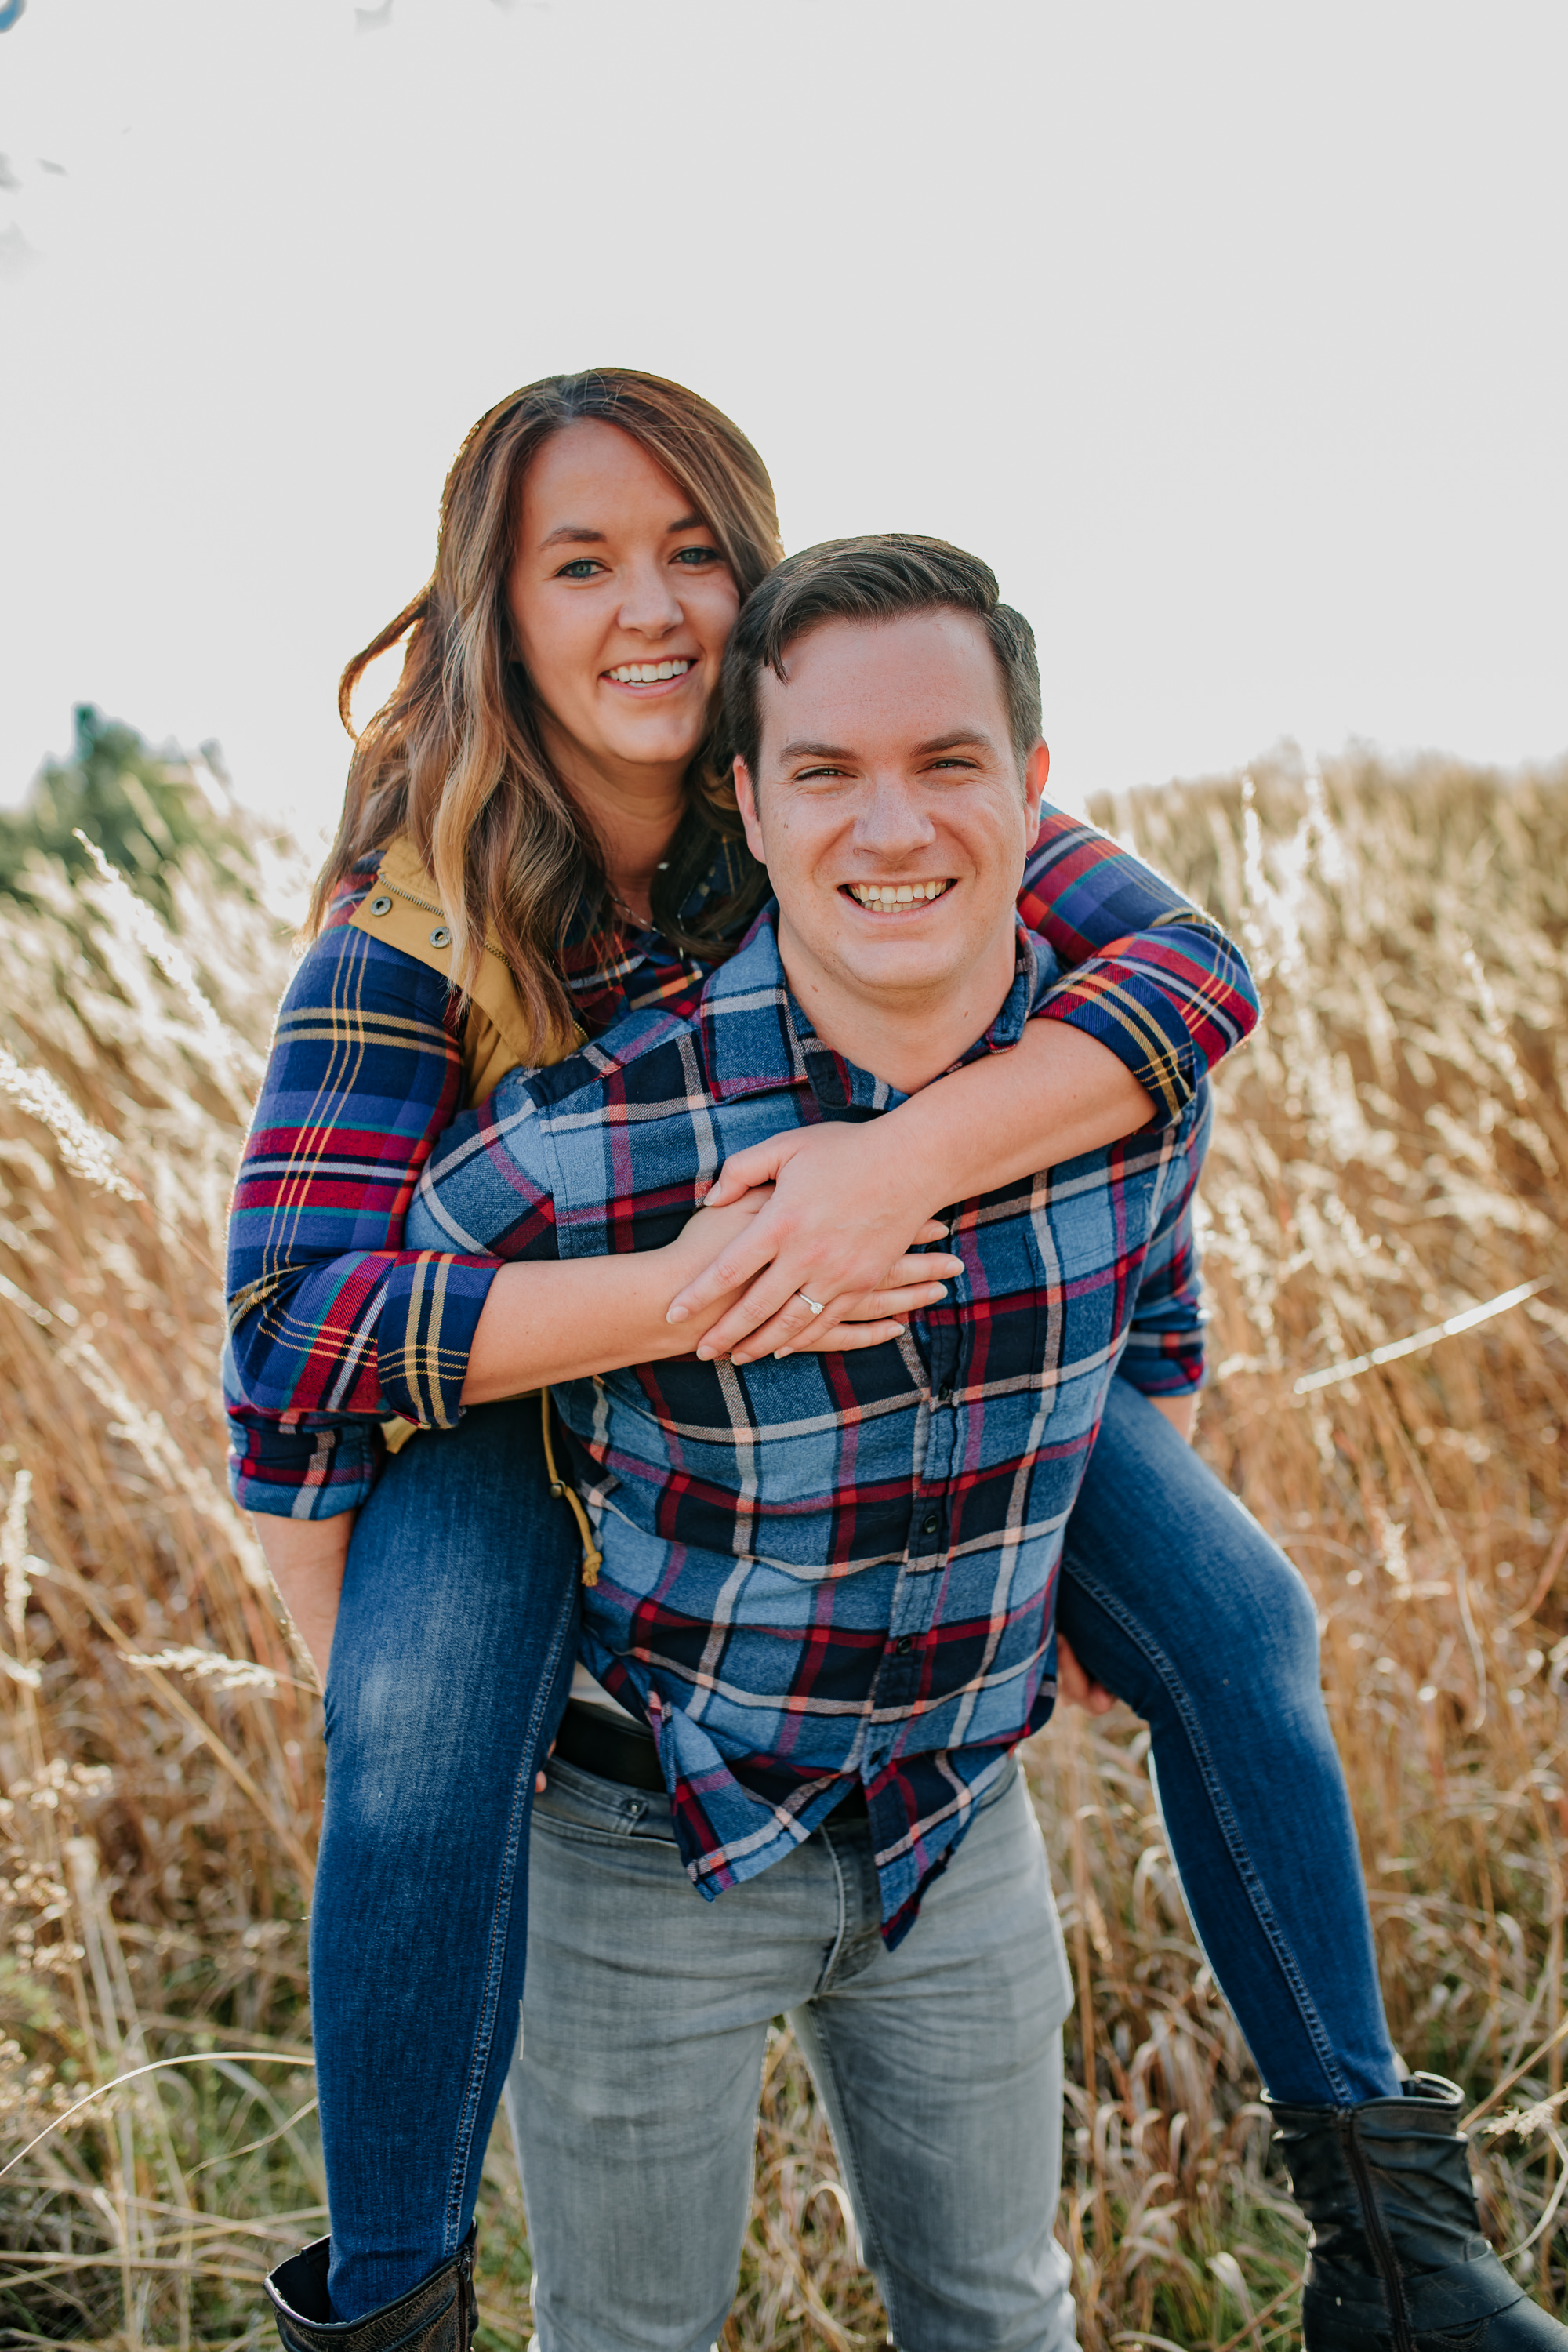 Katie & Adam - Engaged - Nathaniel Jensen Photography - Omaha Nebraska Wedding Photograper - Omaha Nebraska Engagement Session - Chalco Hills Engagement Session-52.jpg